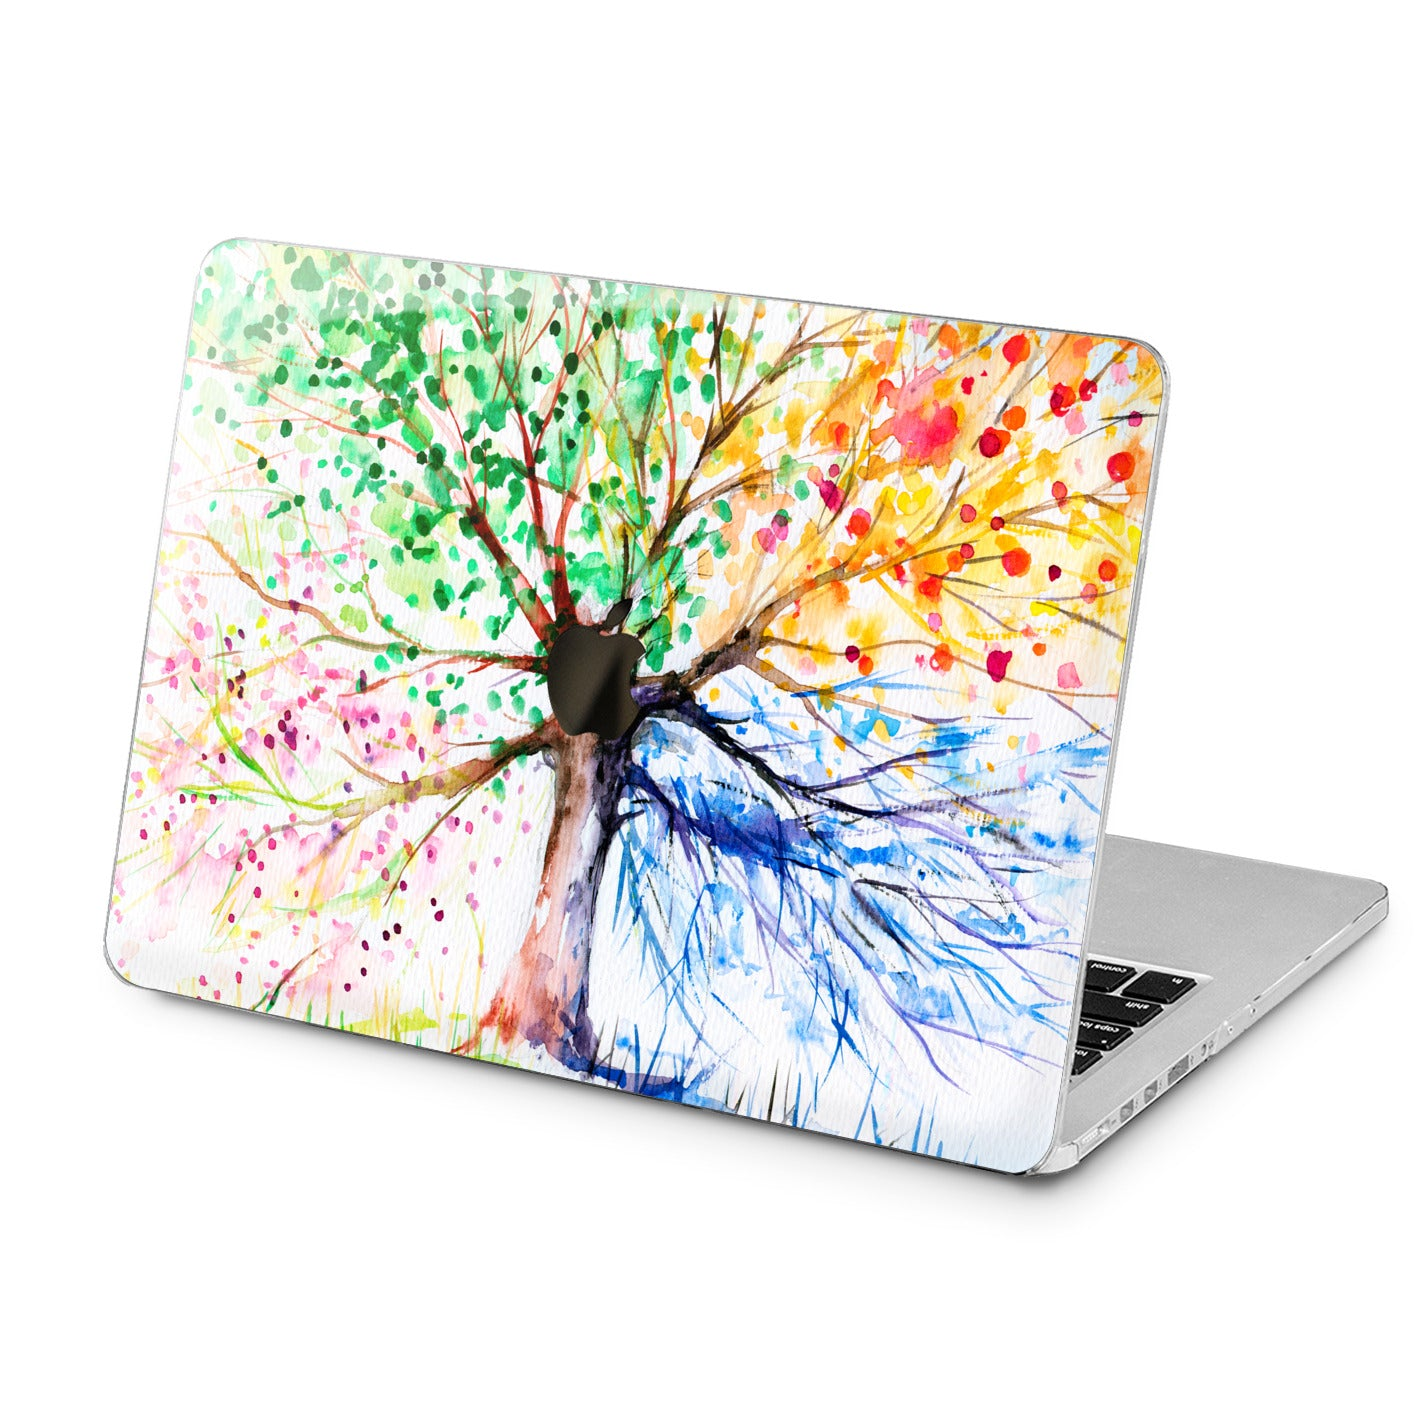 Lex Altern Lex Altern Colored Tree Art Case for your Laptop Apple Macbook.